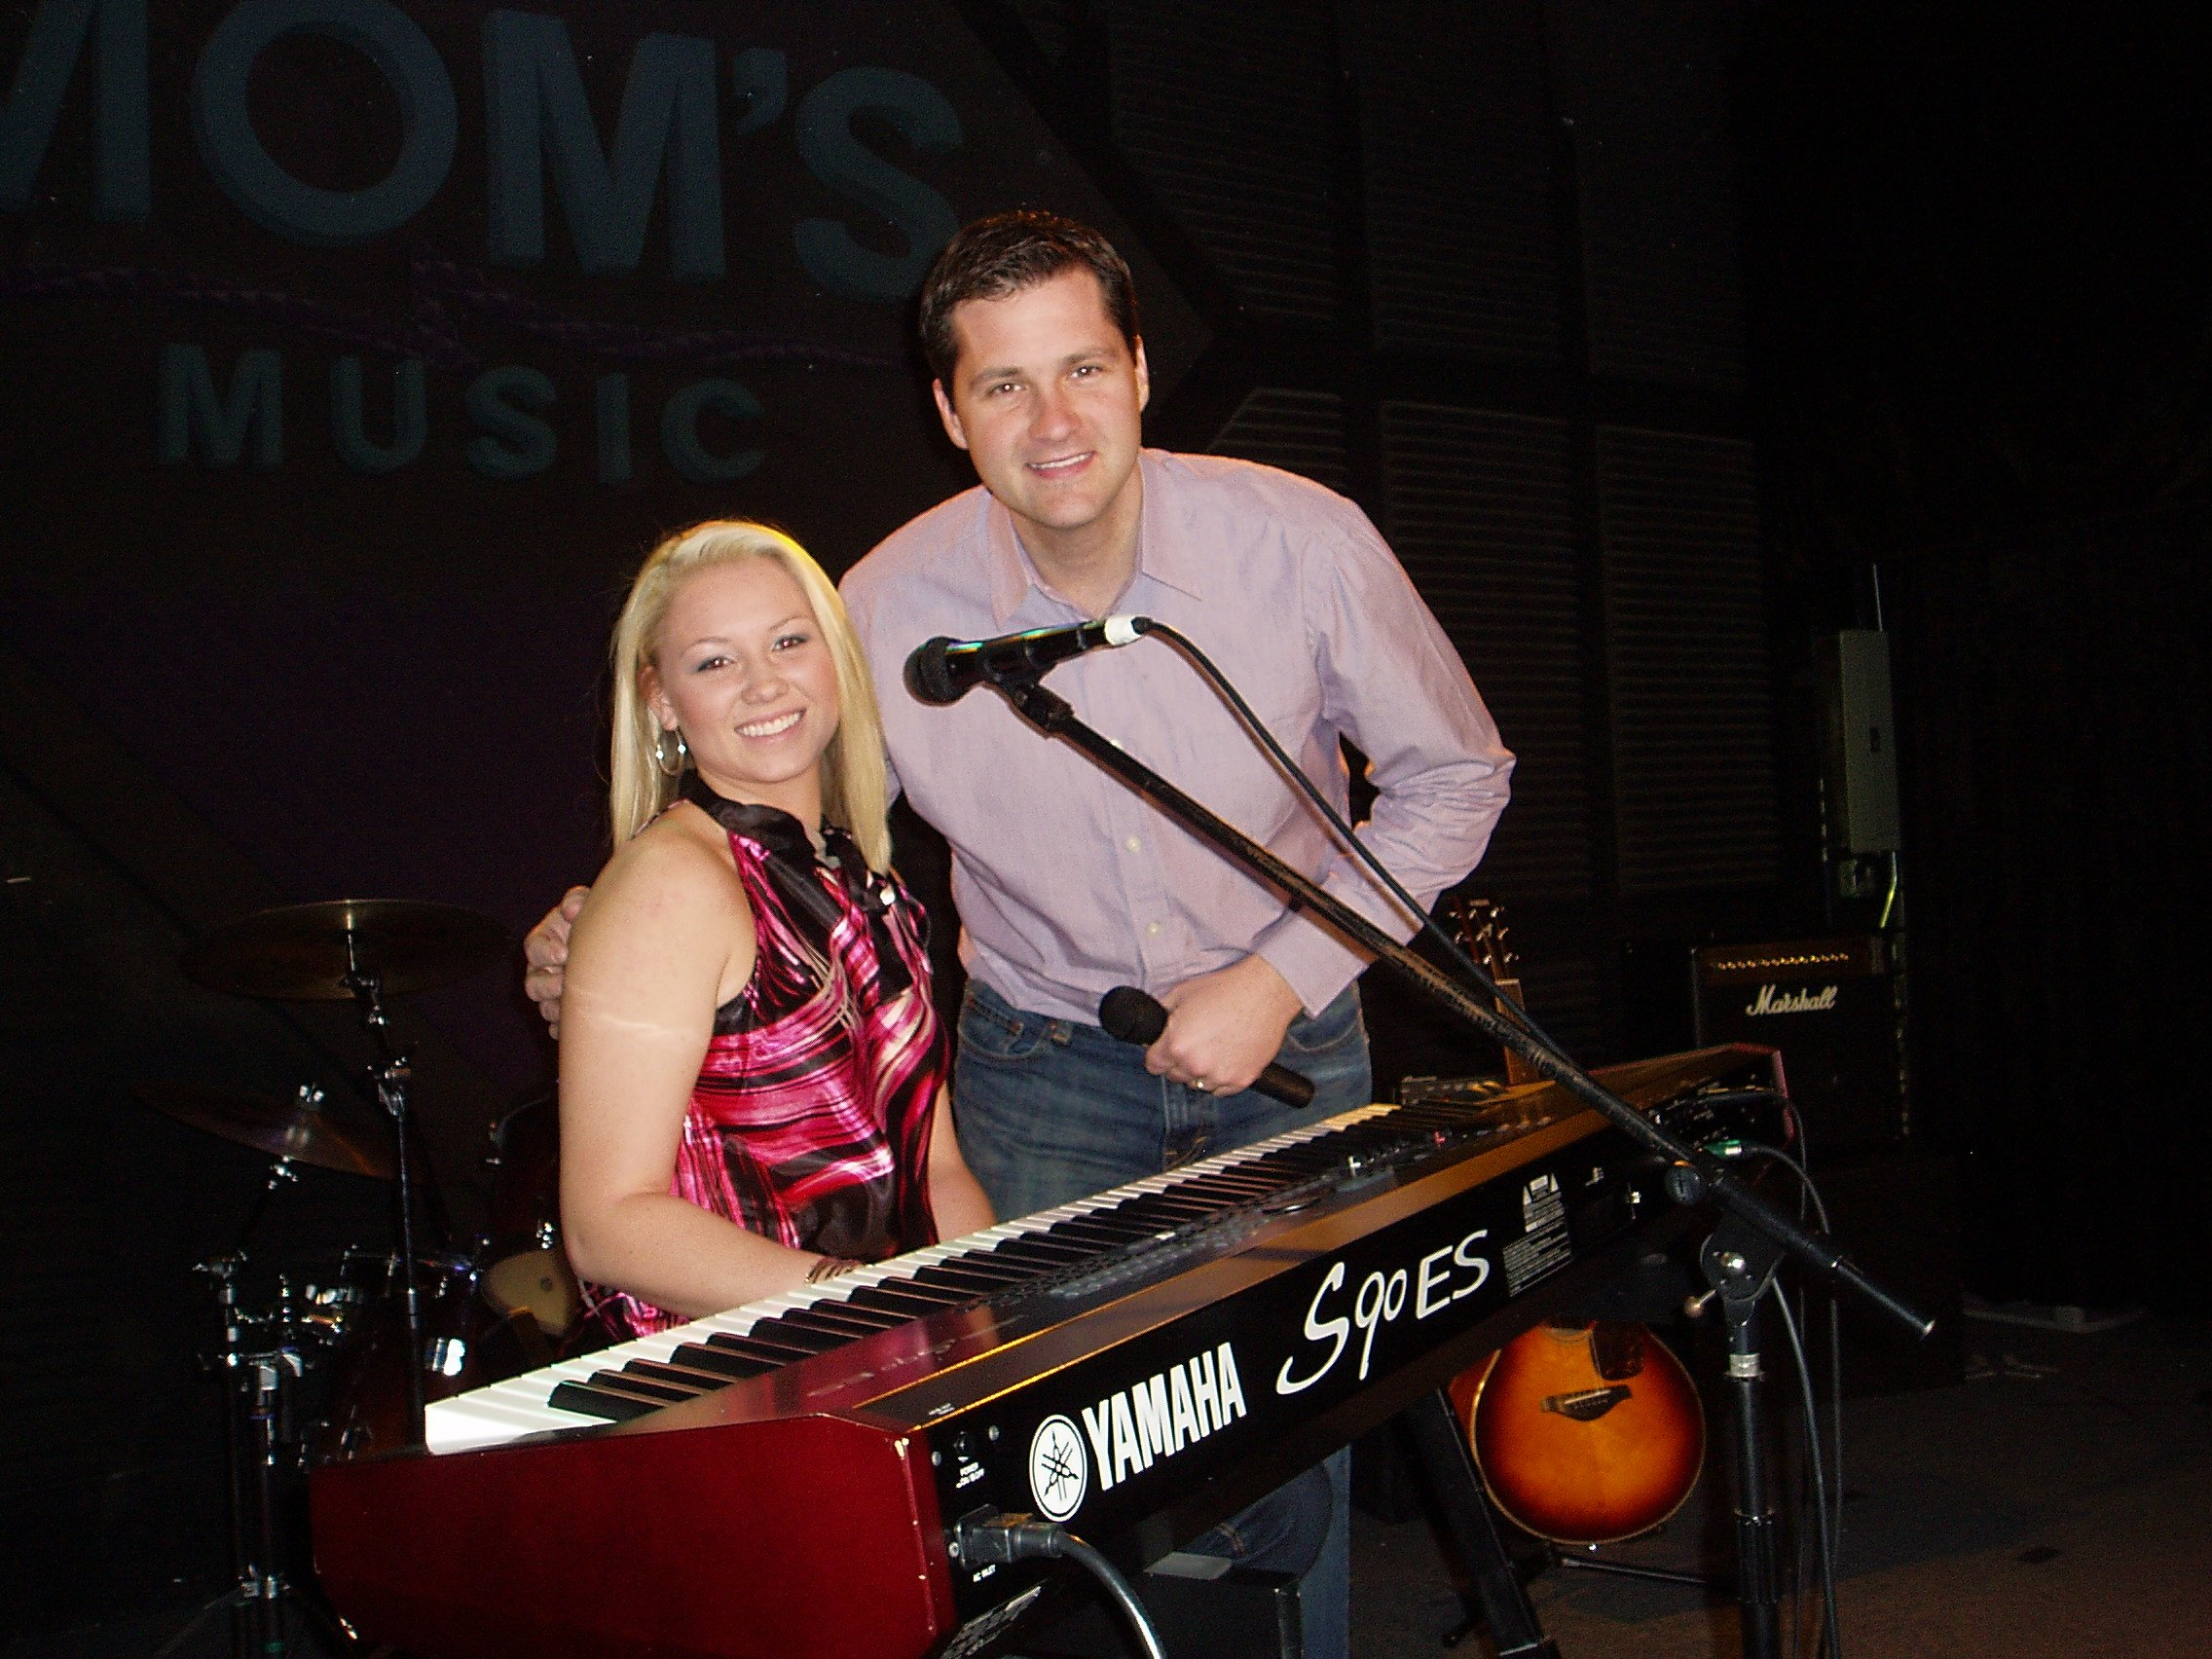 Emmy Bodner of Georgetown, Indiana won the 2010 Fox in the Morning Idol